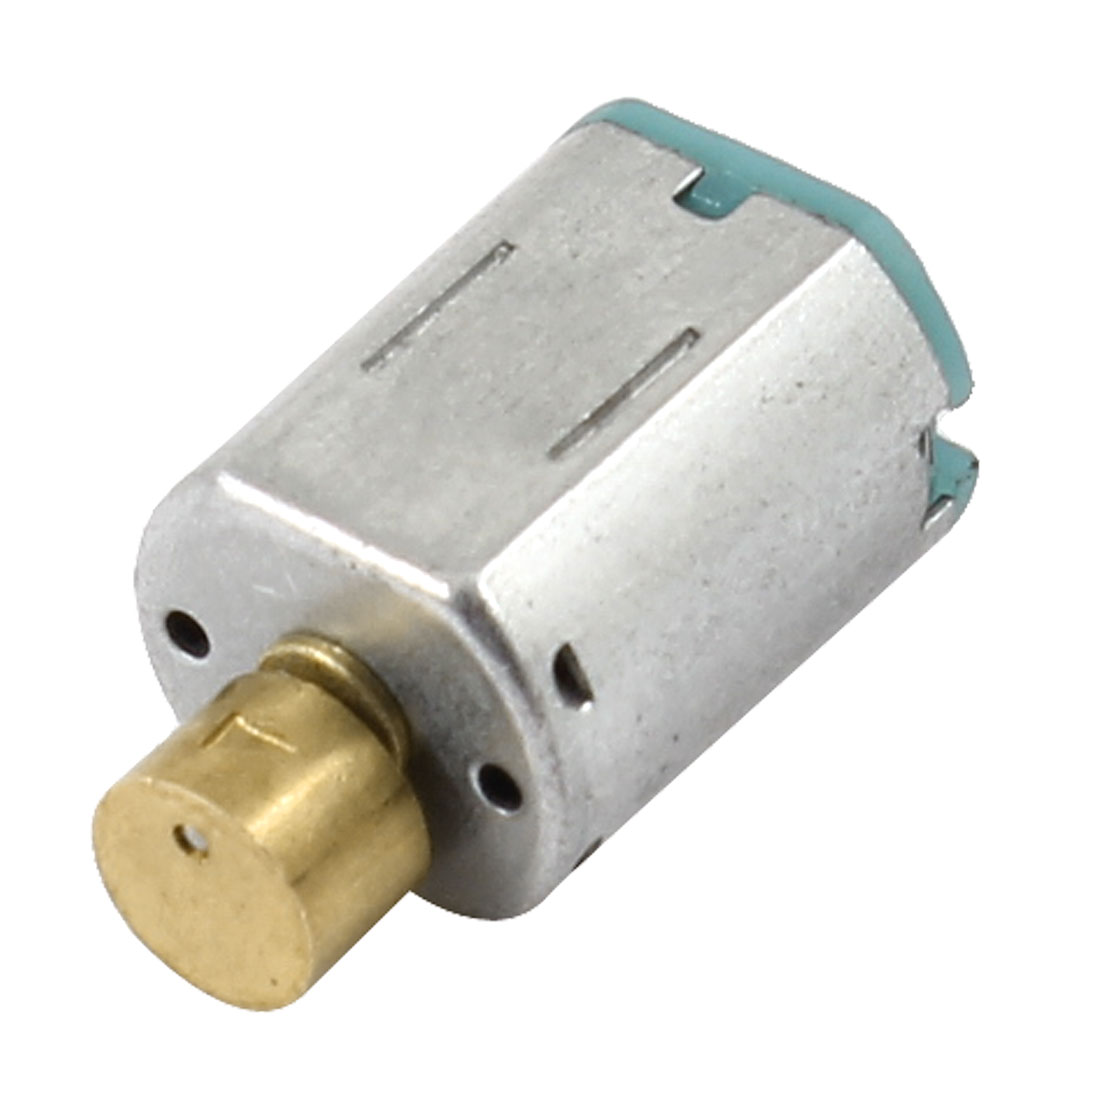 Silver-Tone-Shell-Mini-Vibrating-Vibration-Motor-DC-3-4V-5000RPM